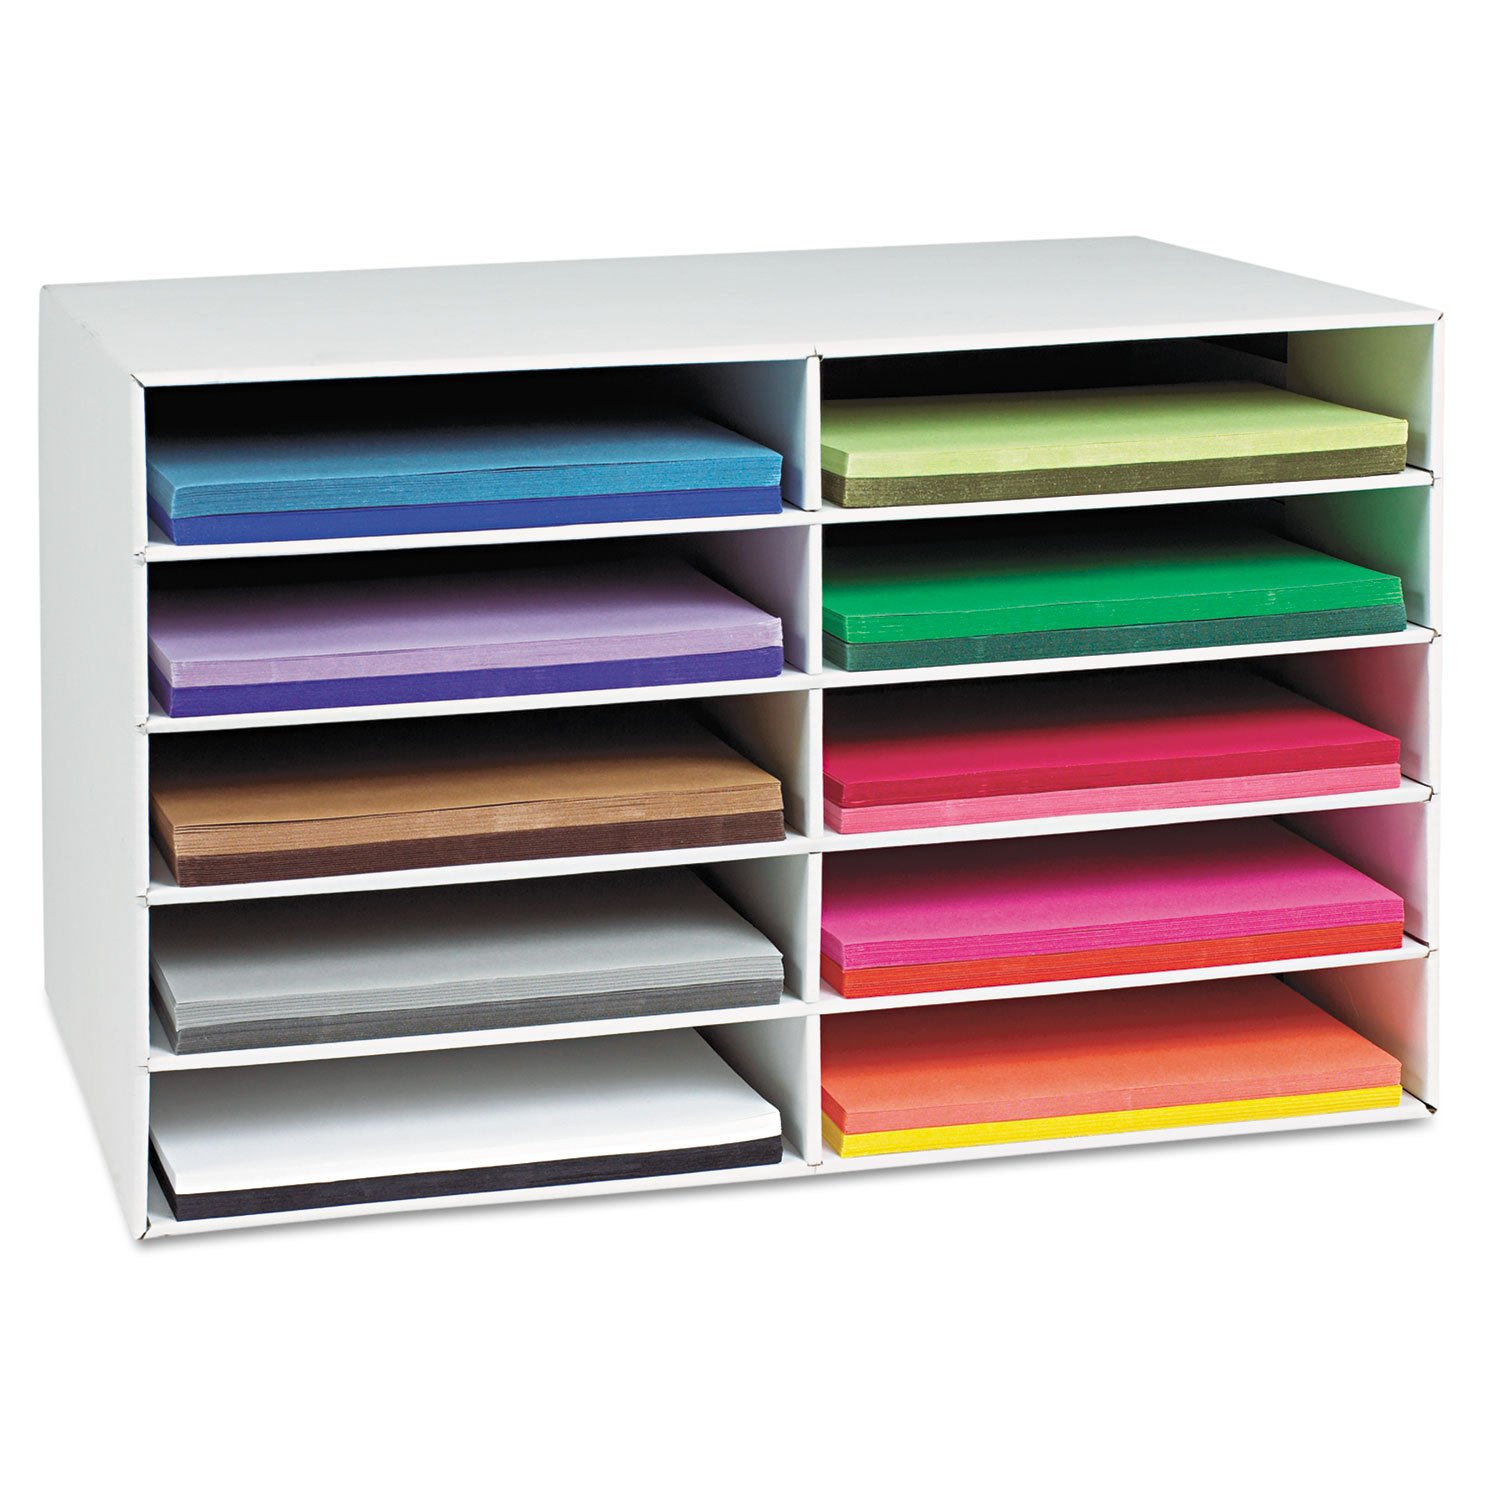 Classroom Keepers 12'' x 18'' Construction Paper Storage, 10-Slot, White, 16-7/8''H x 26-7/8''W x 18-1/2''D, 1 Piece